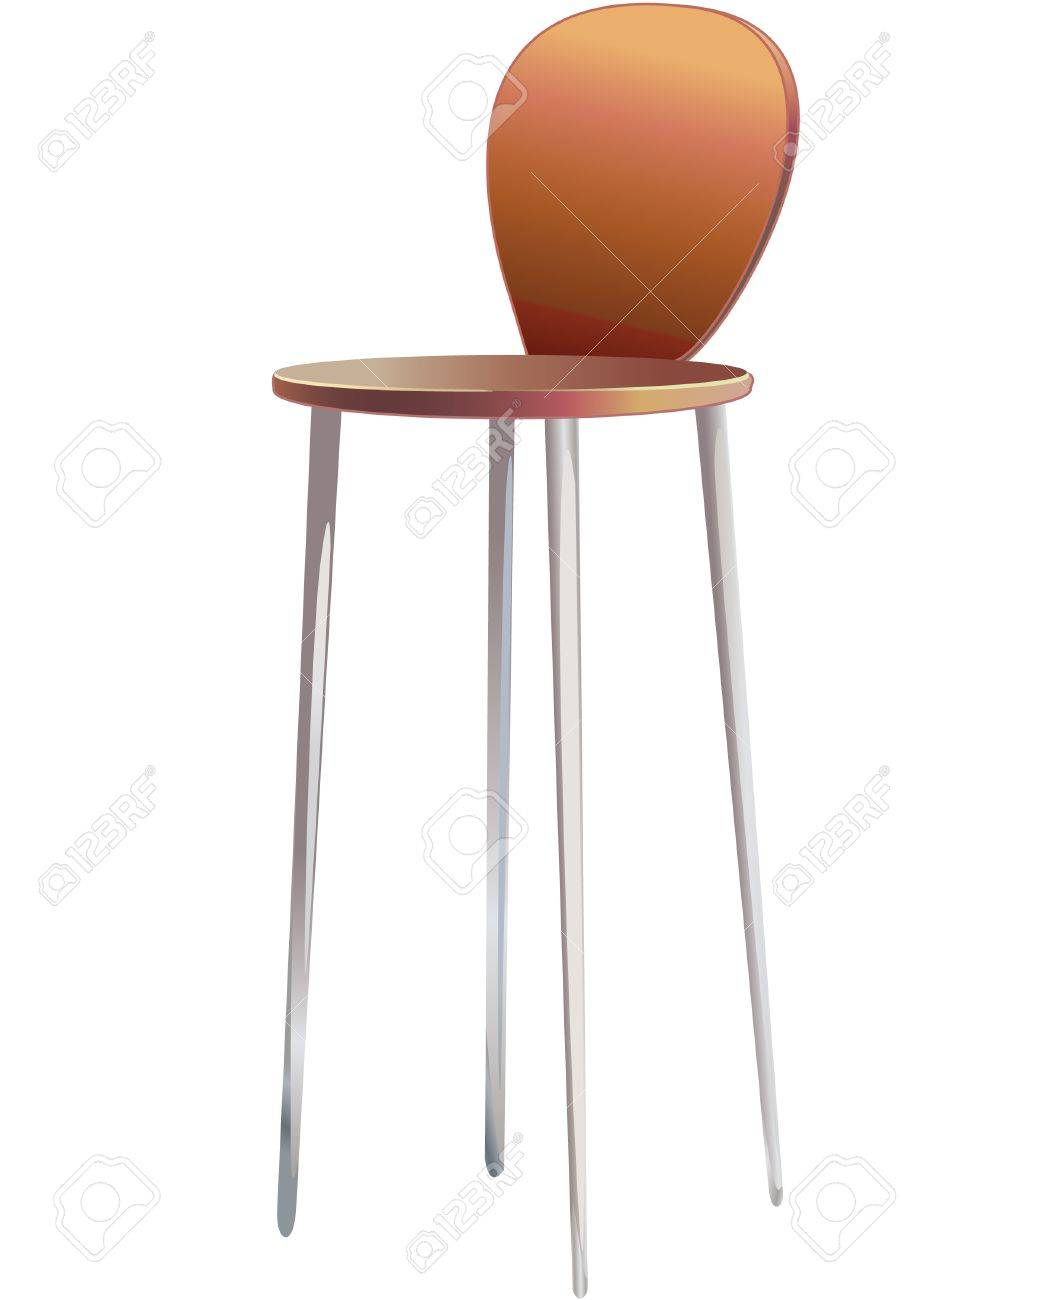 Color drawing a piece of furniture chair Stock Vector - 10224946